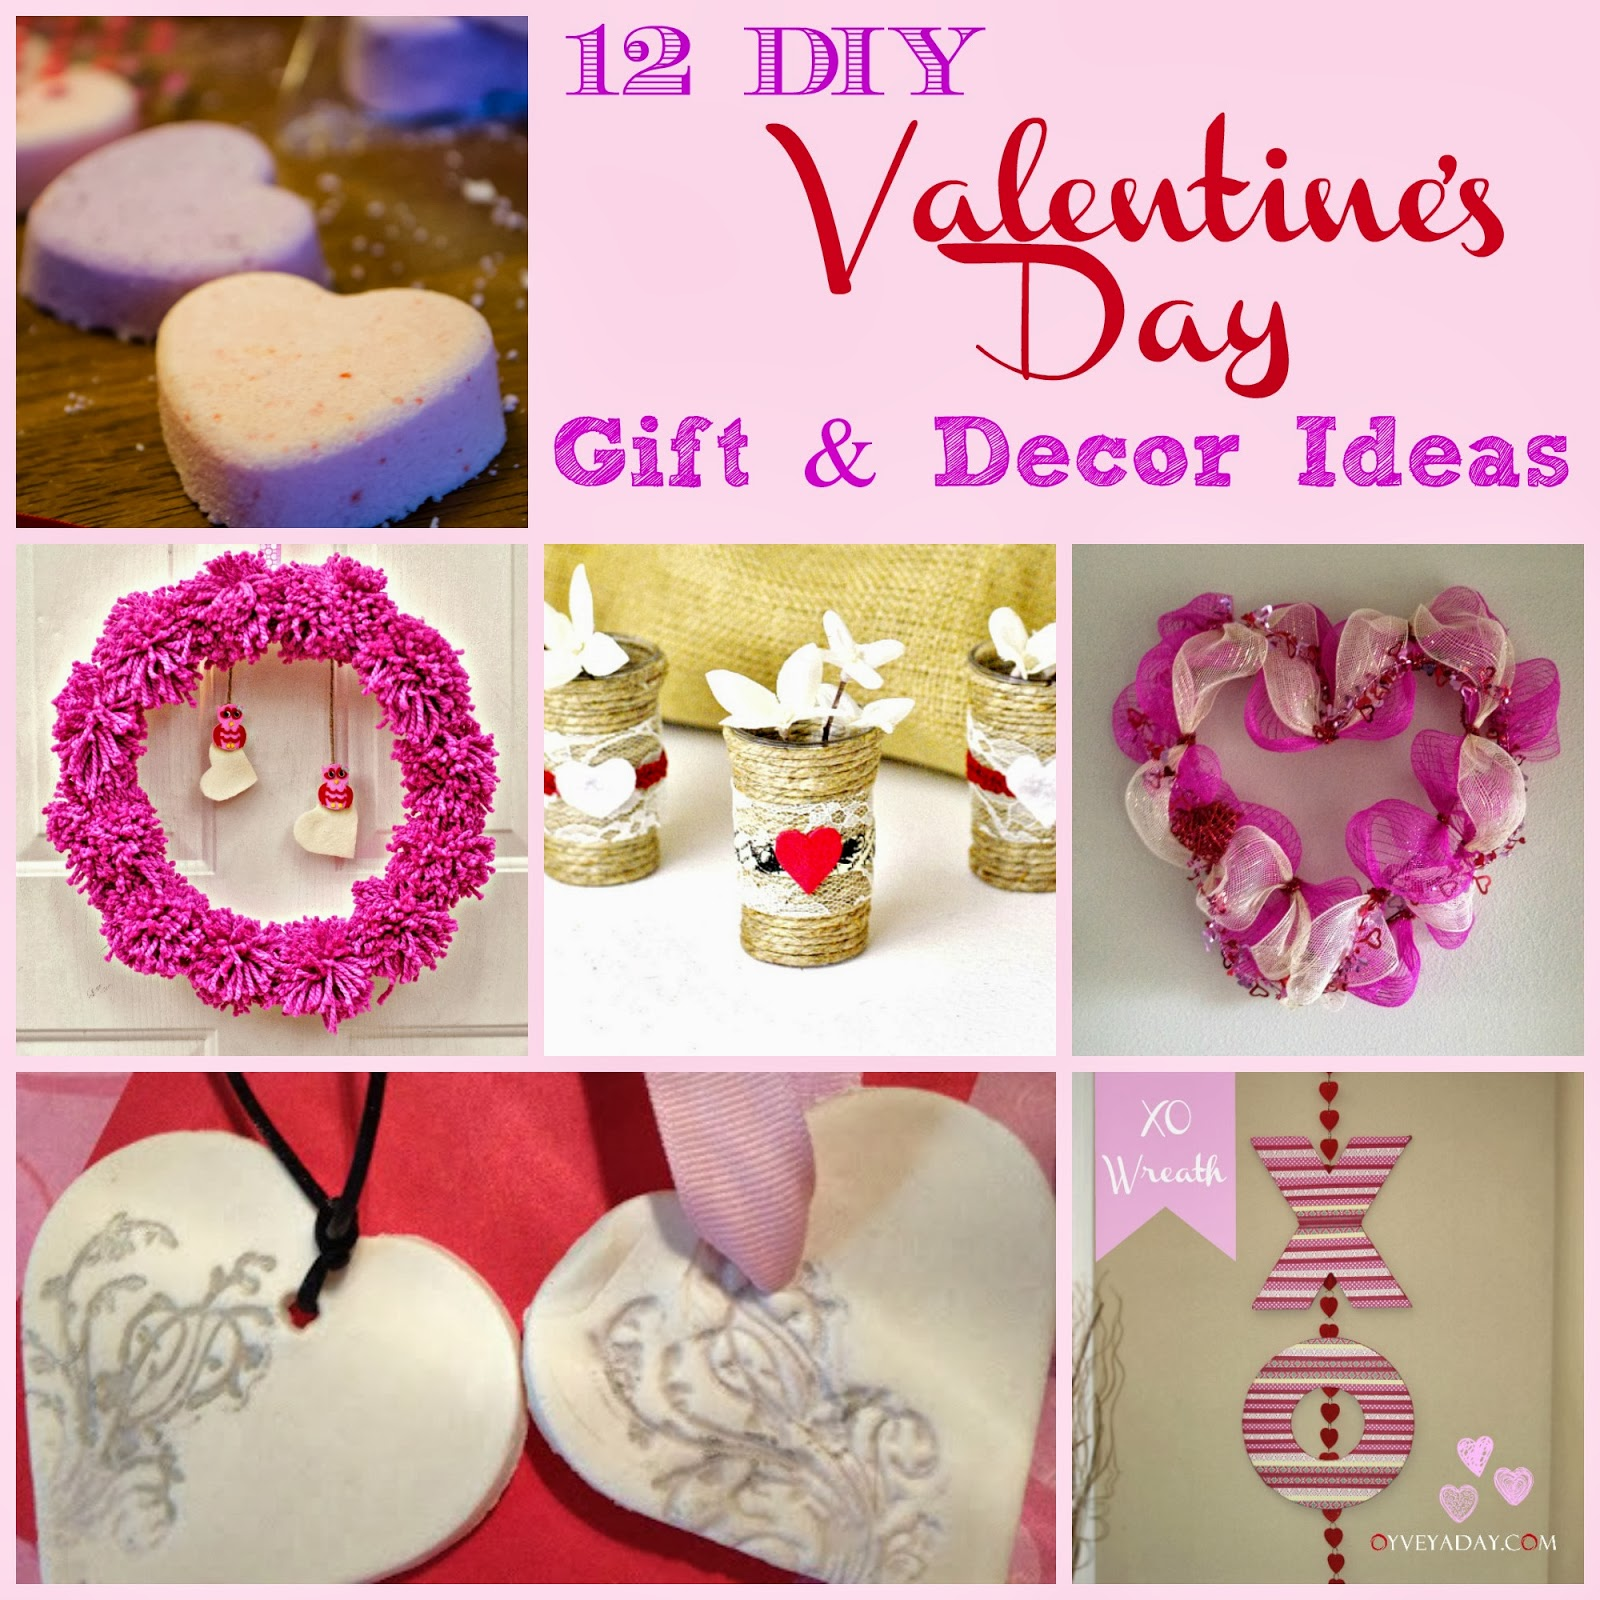 12 diy valentine 39 s day gift decor ideas outnumbered 3 to 1 for What is the best gift for valentine